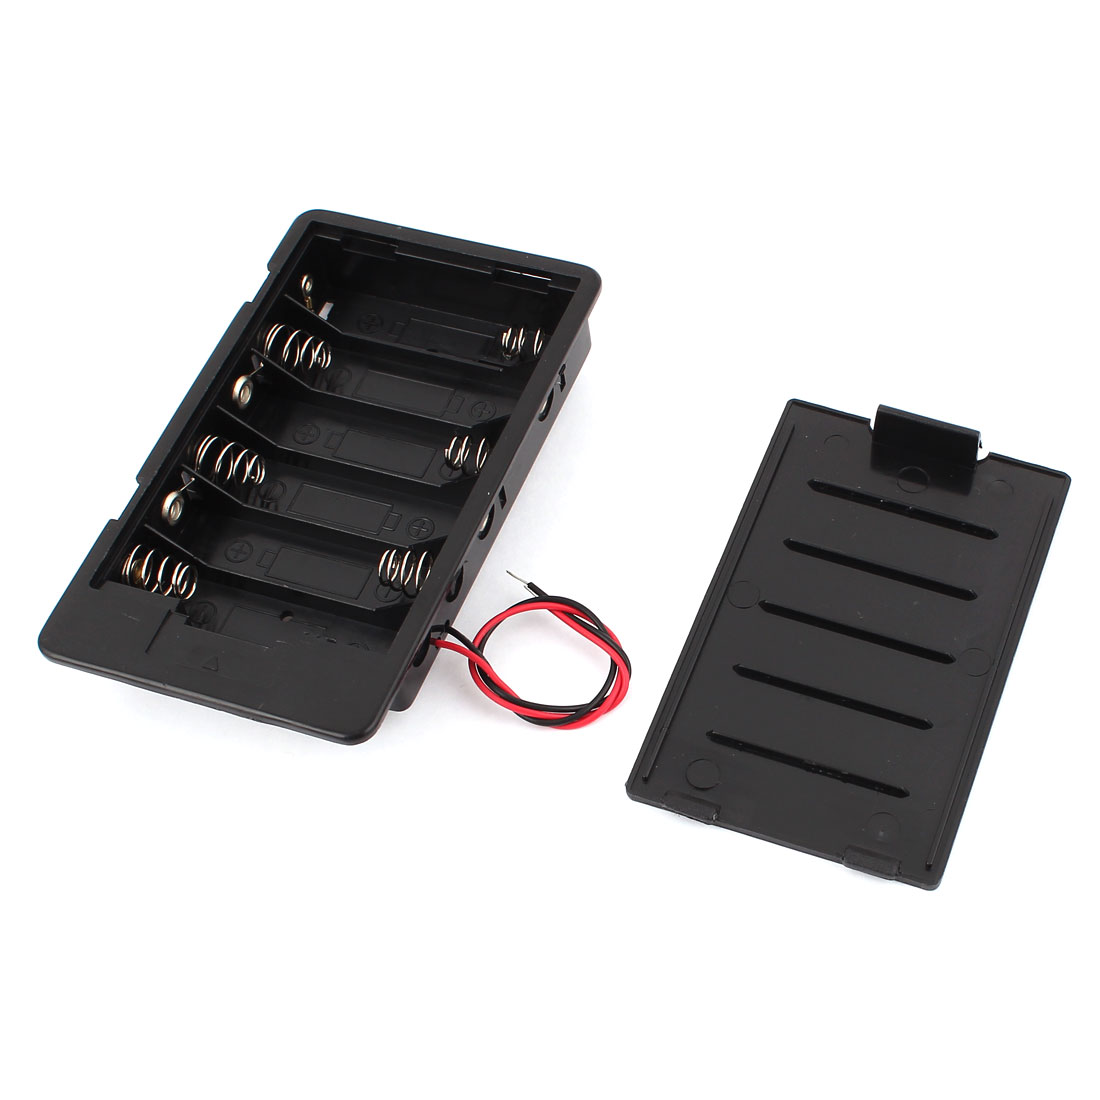 Plastic In Series 6 x AA 1.5V Battery Holder Storage Case w Cover